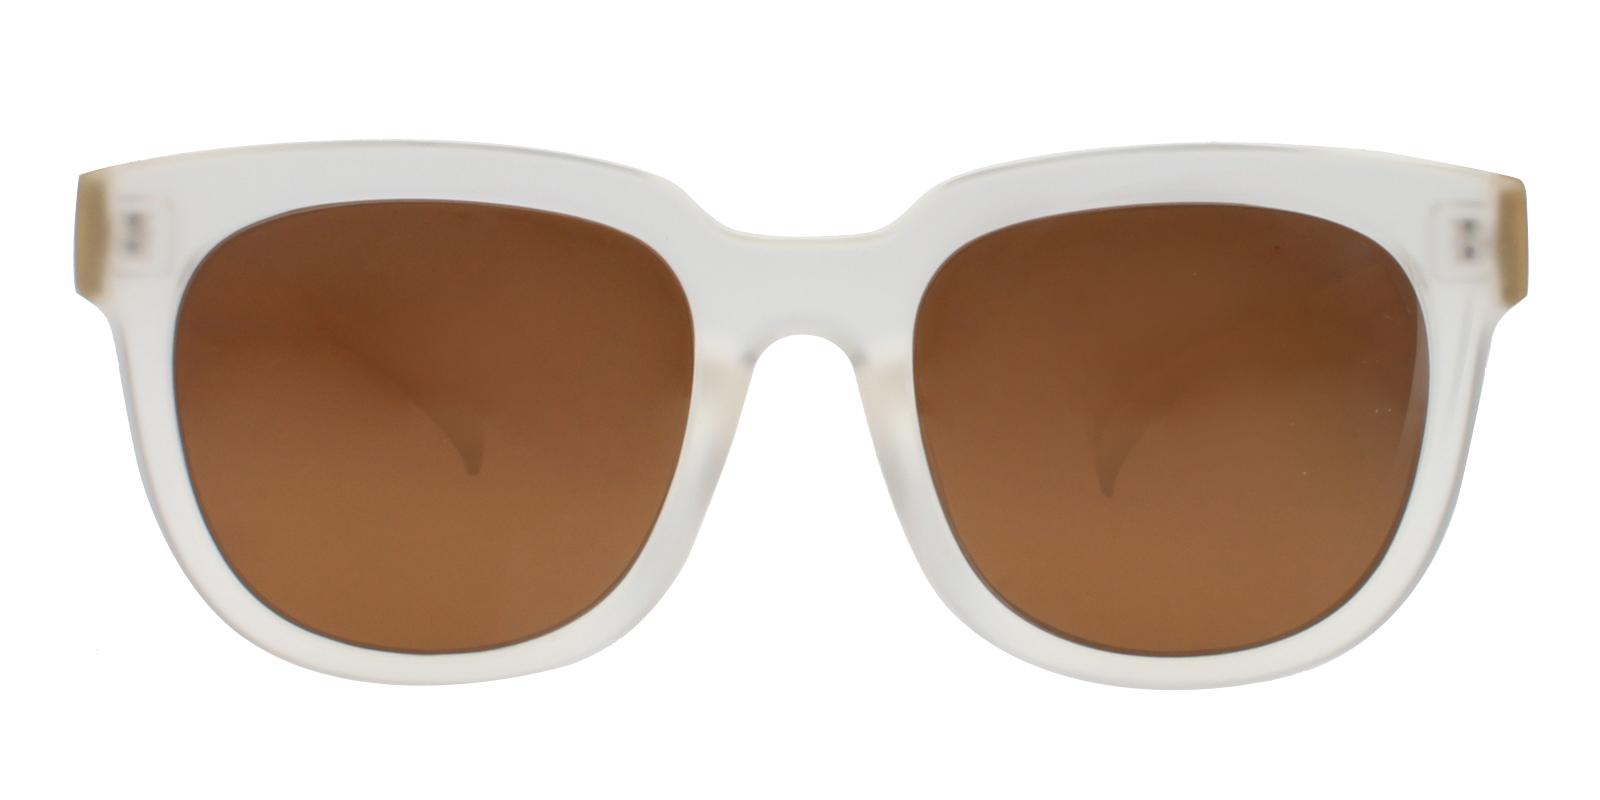 Pecan Island Translucent TR Sunglasses , UniversalBridgeFit Frames from ABBE Glasses